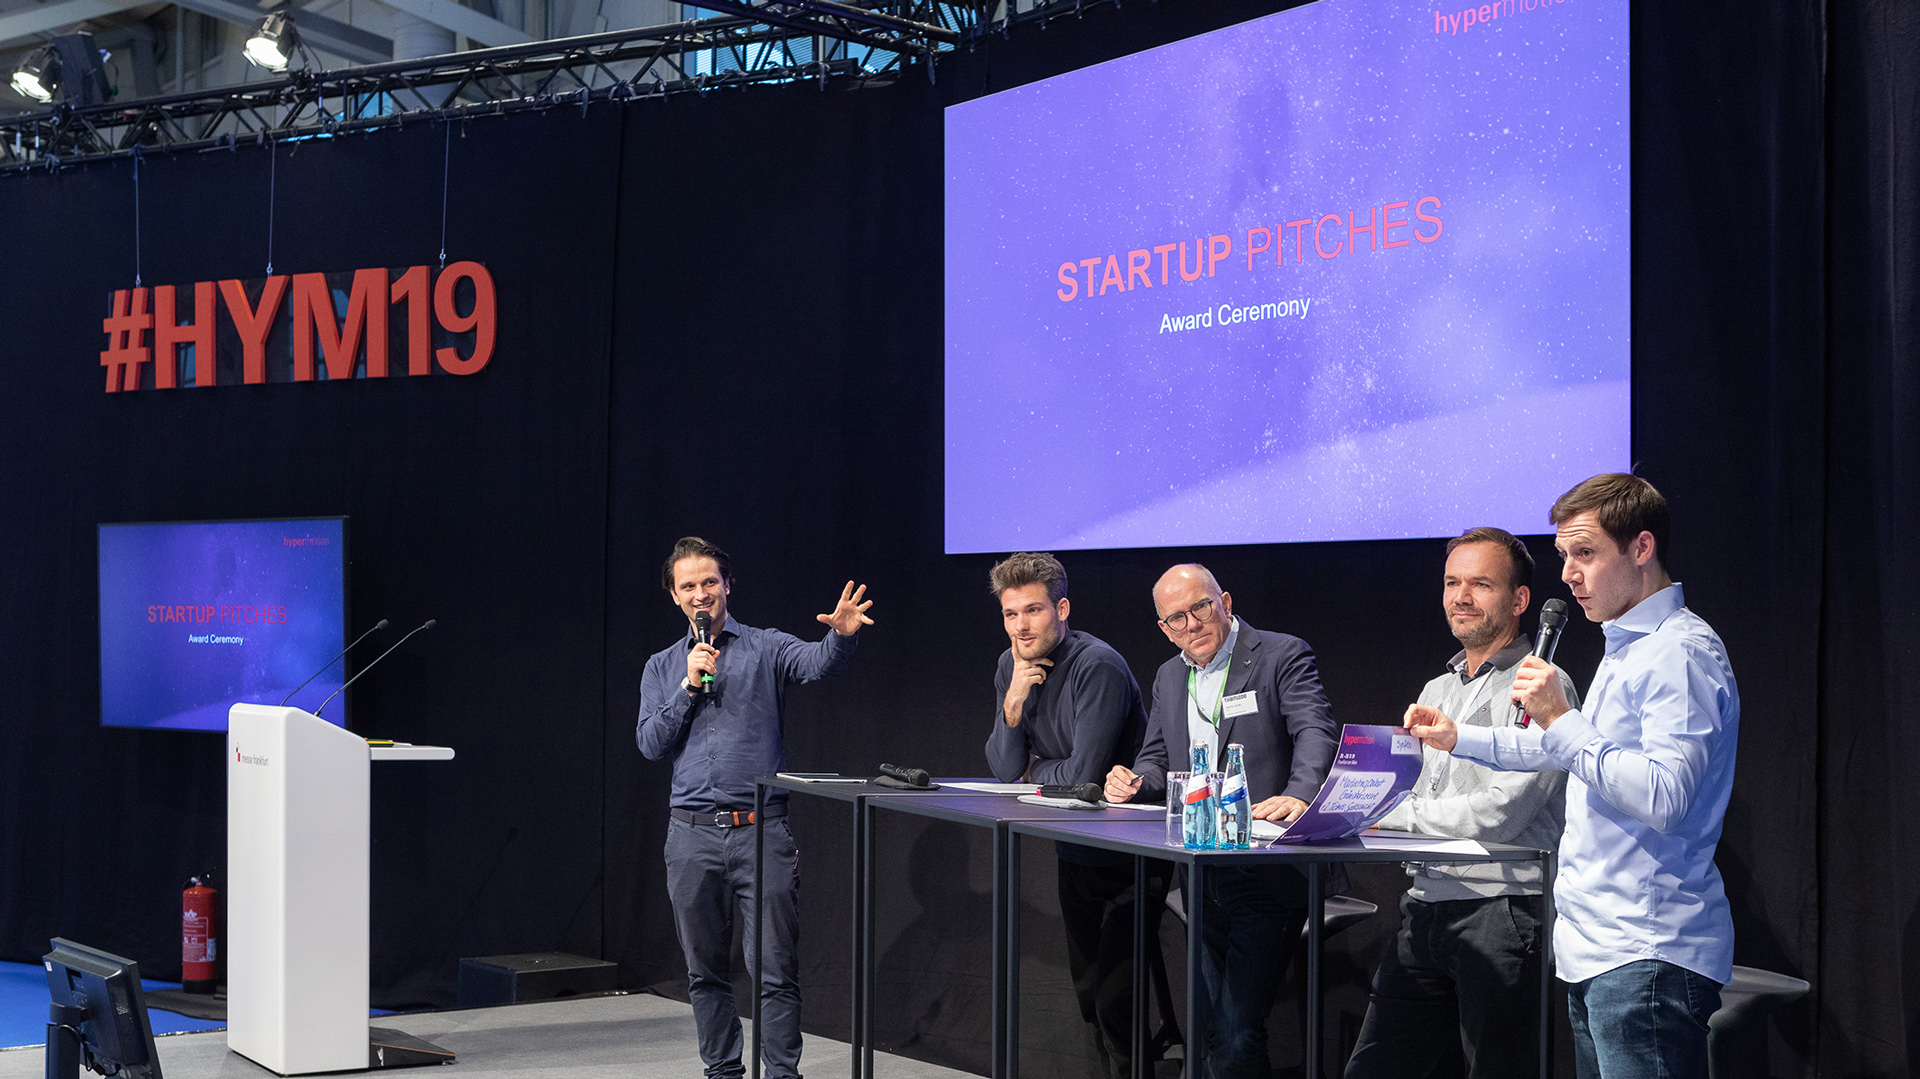 Start-up Pitches